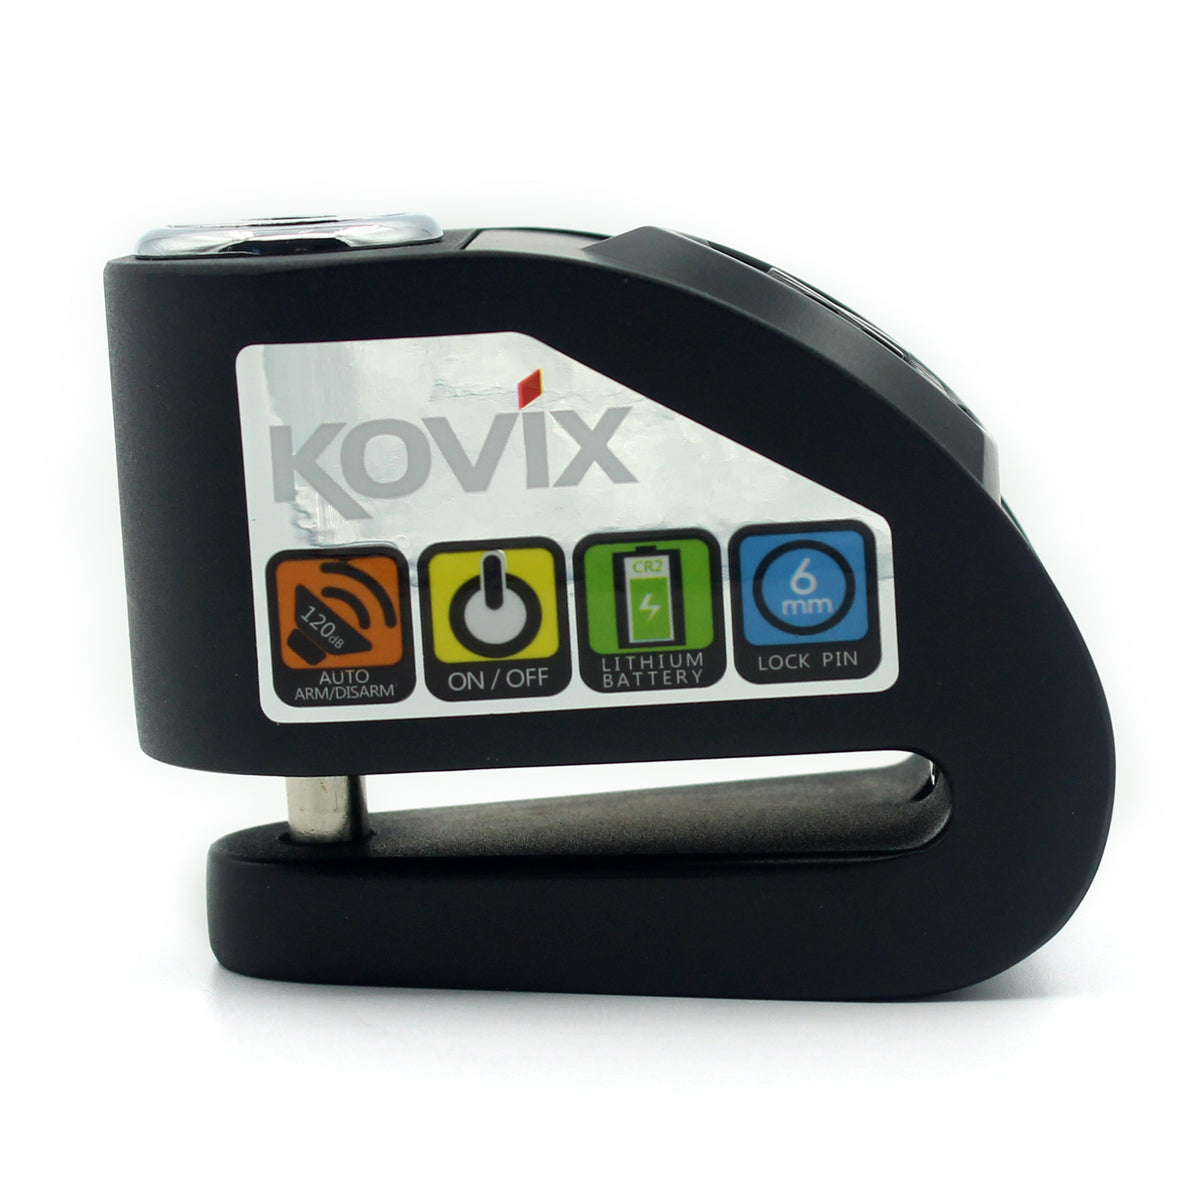 KD Series Lock, Disc Lock, Kovix - Averys Motorcycles